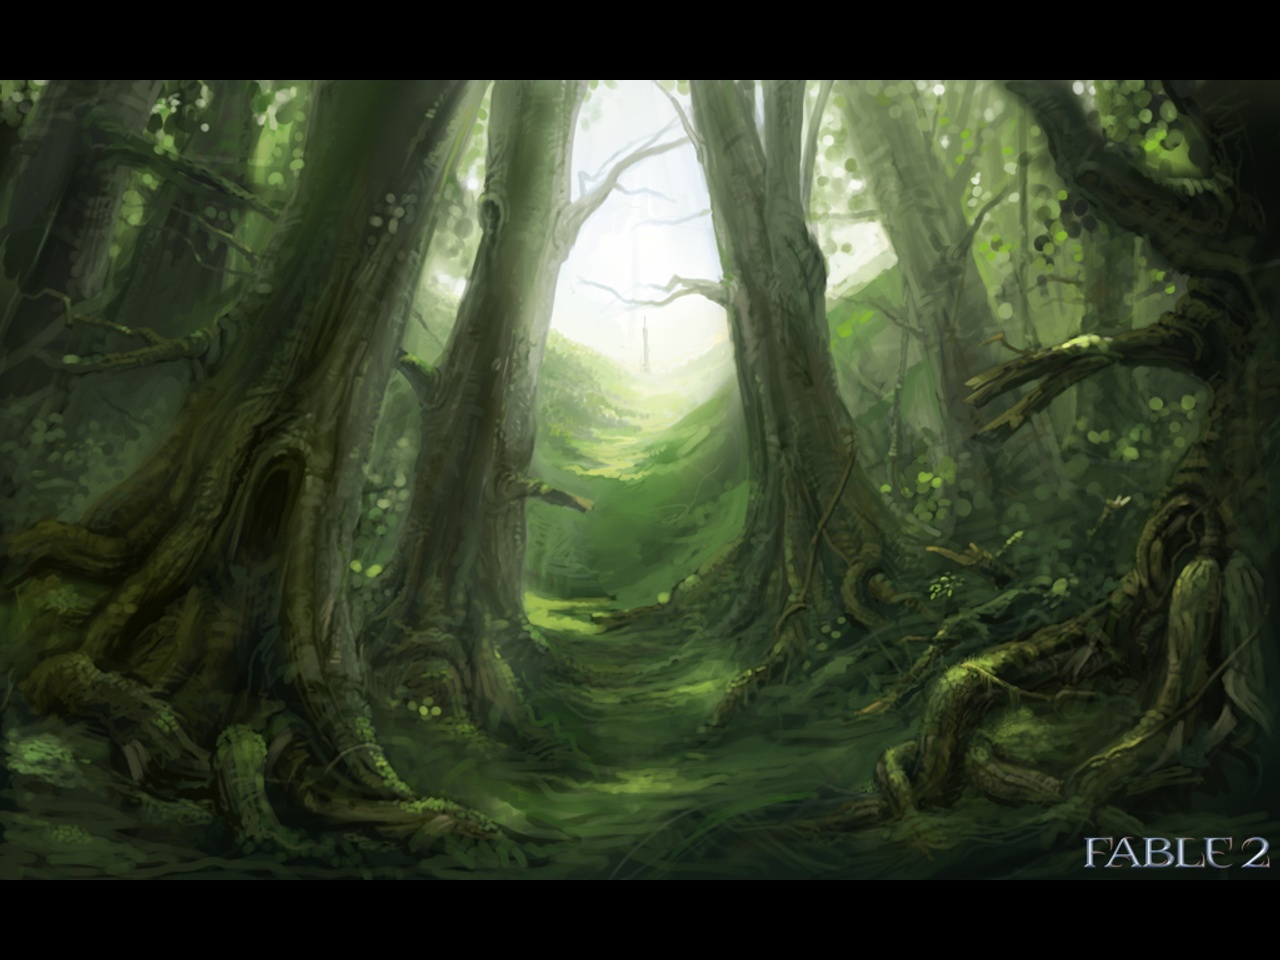 woods fable video Games HD Wallpaper